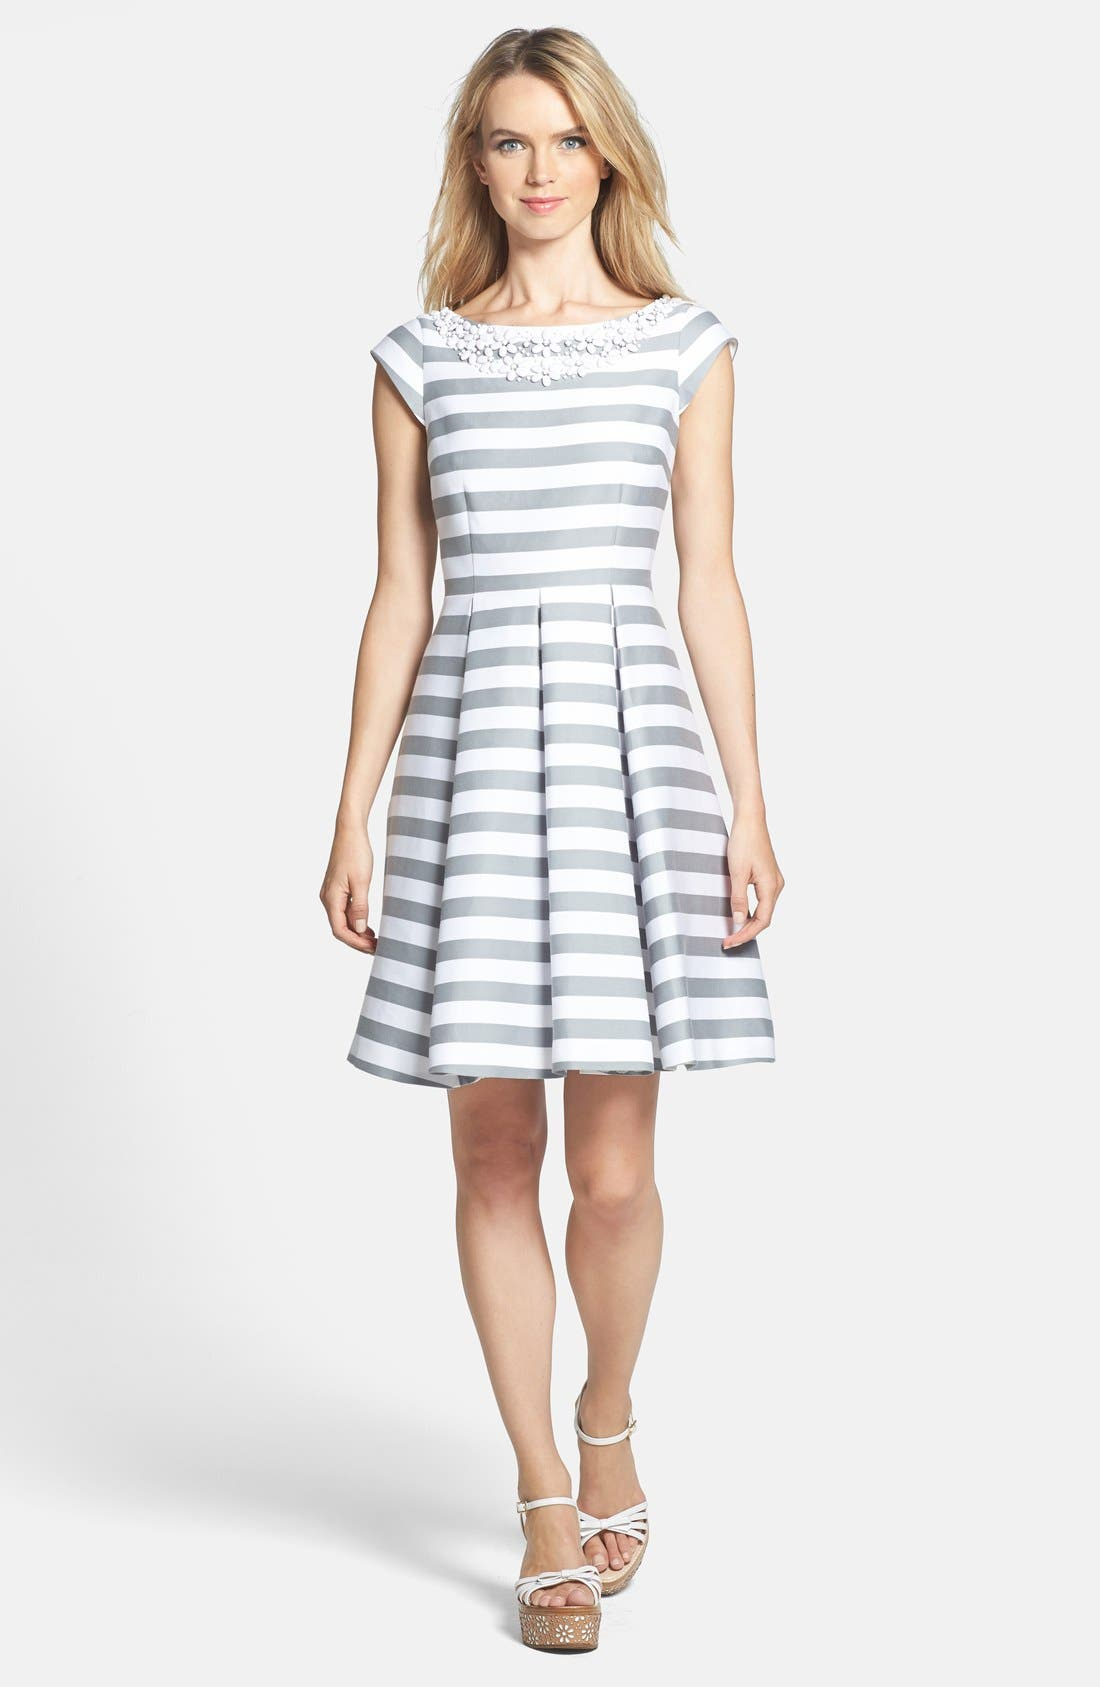 Alternate Image 1 Selected - kate spade new york 'mariella' beaded cotton blend fit & flare dress